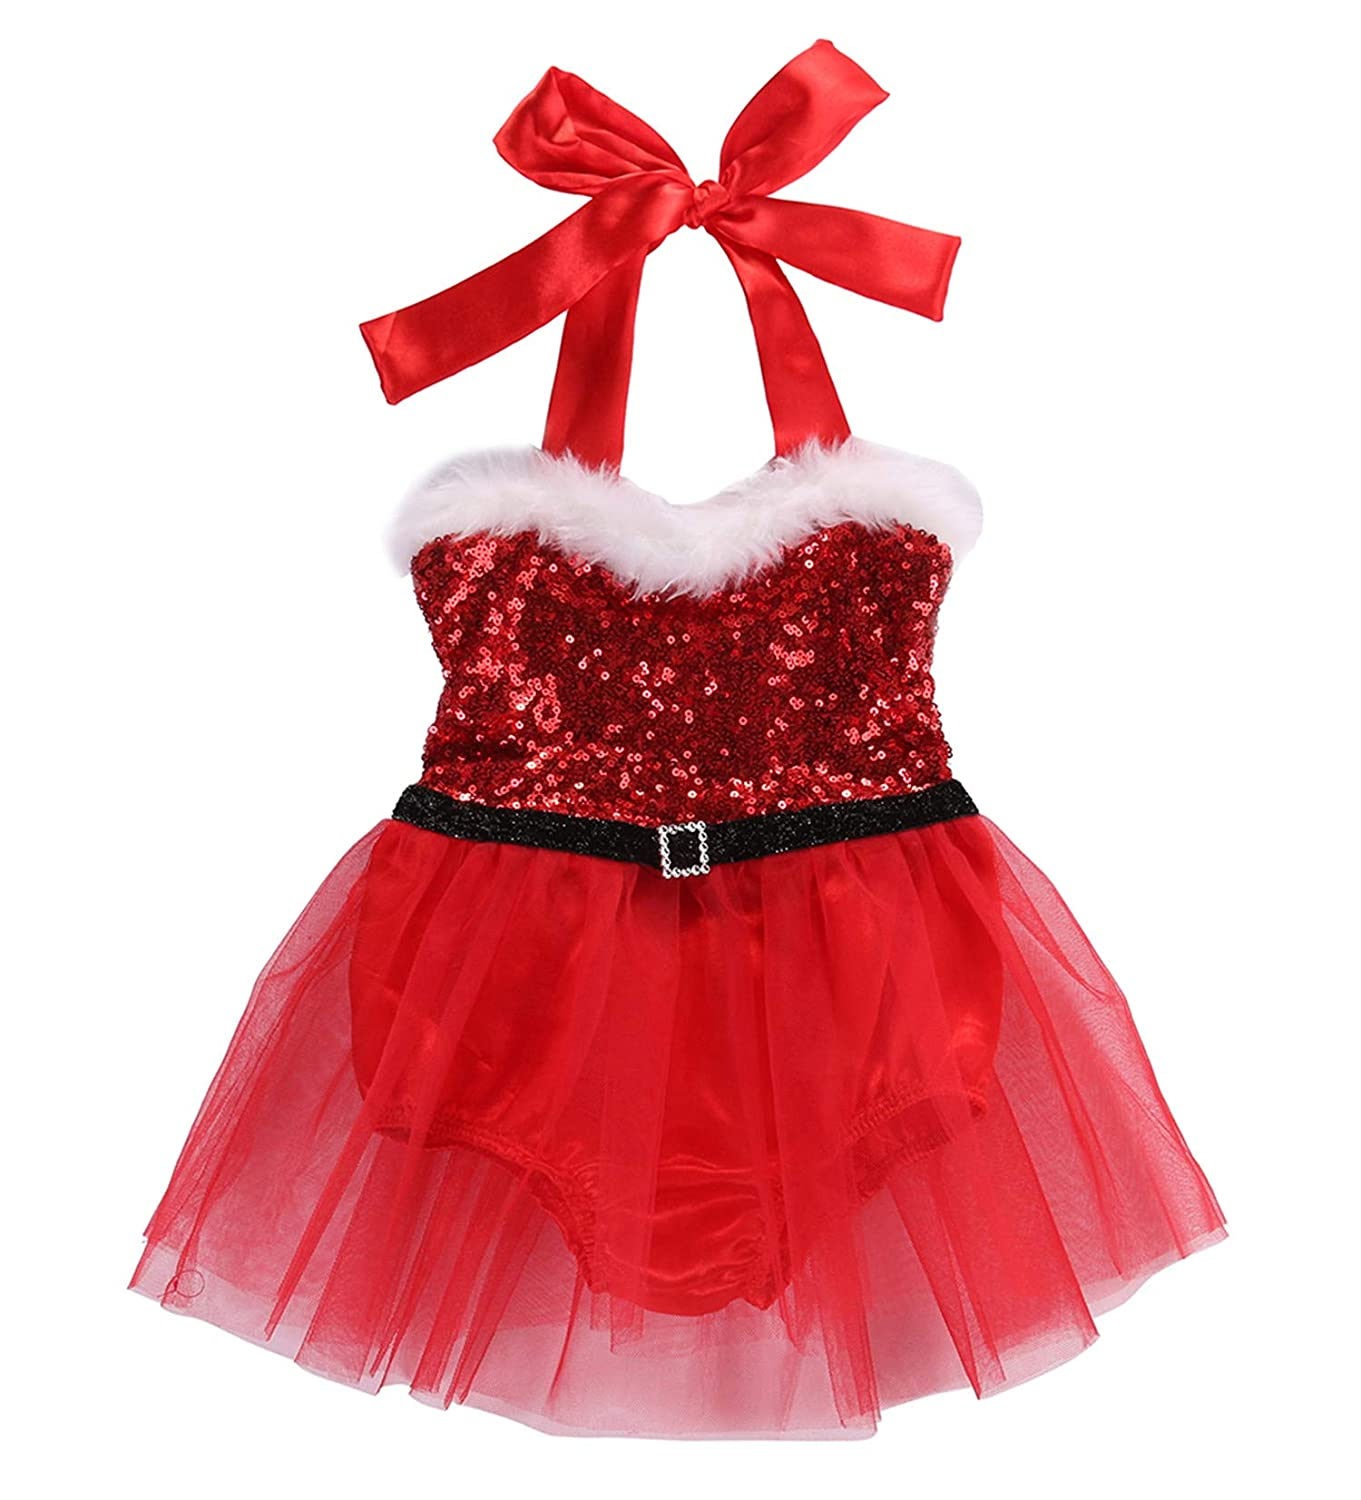 Newborn Baby Girl Rompers Dress Clothes Santa Claus Sequin Jumpsuit Christmas Outfits